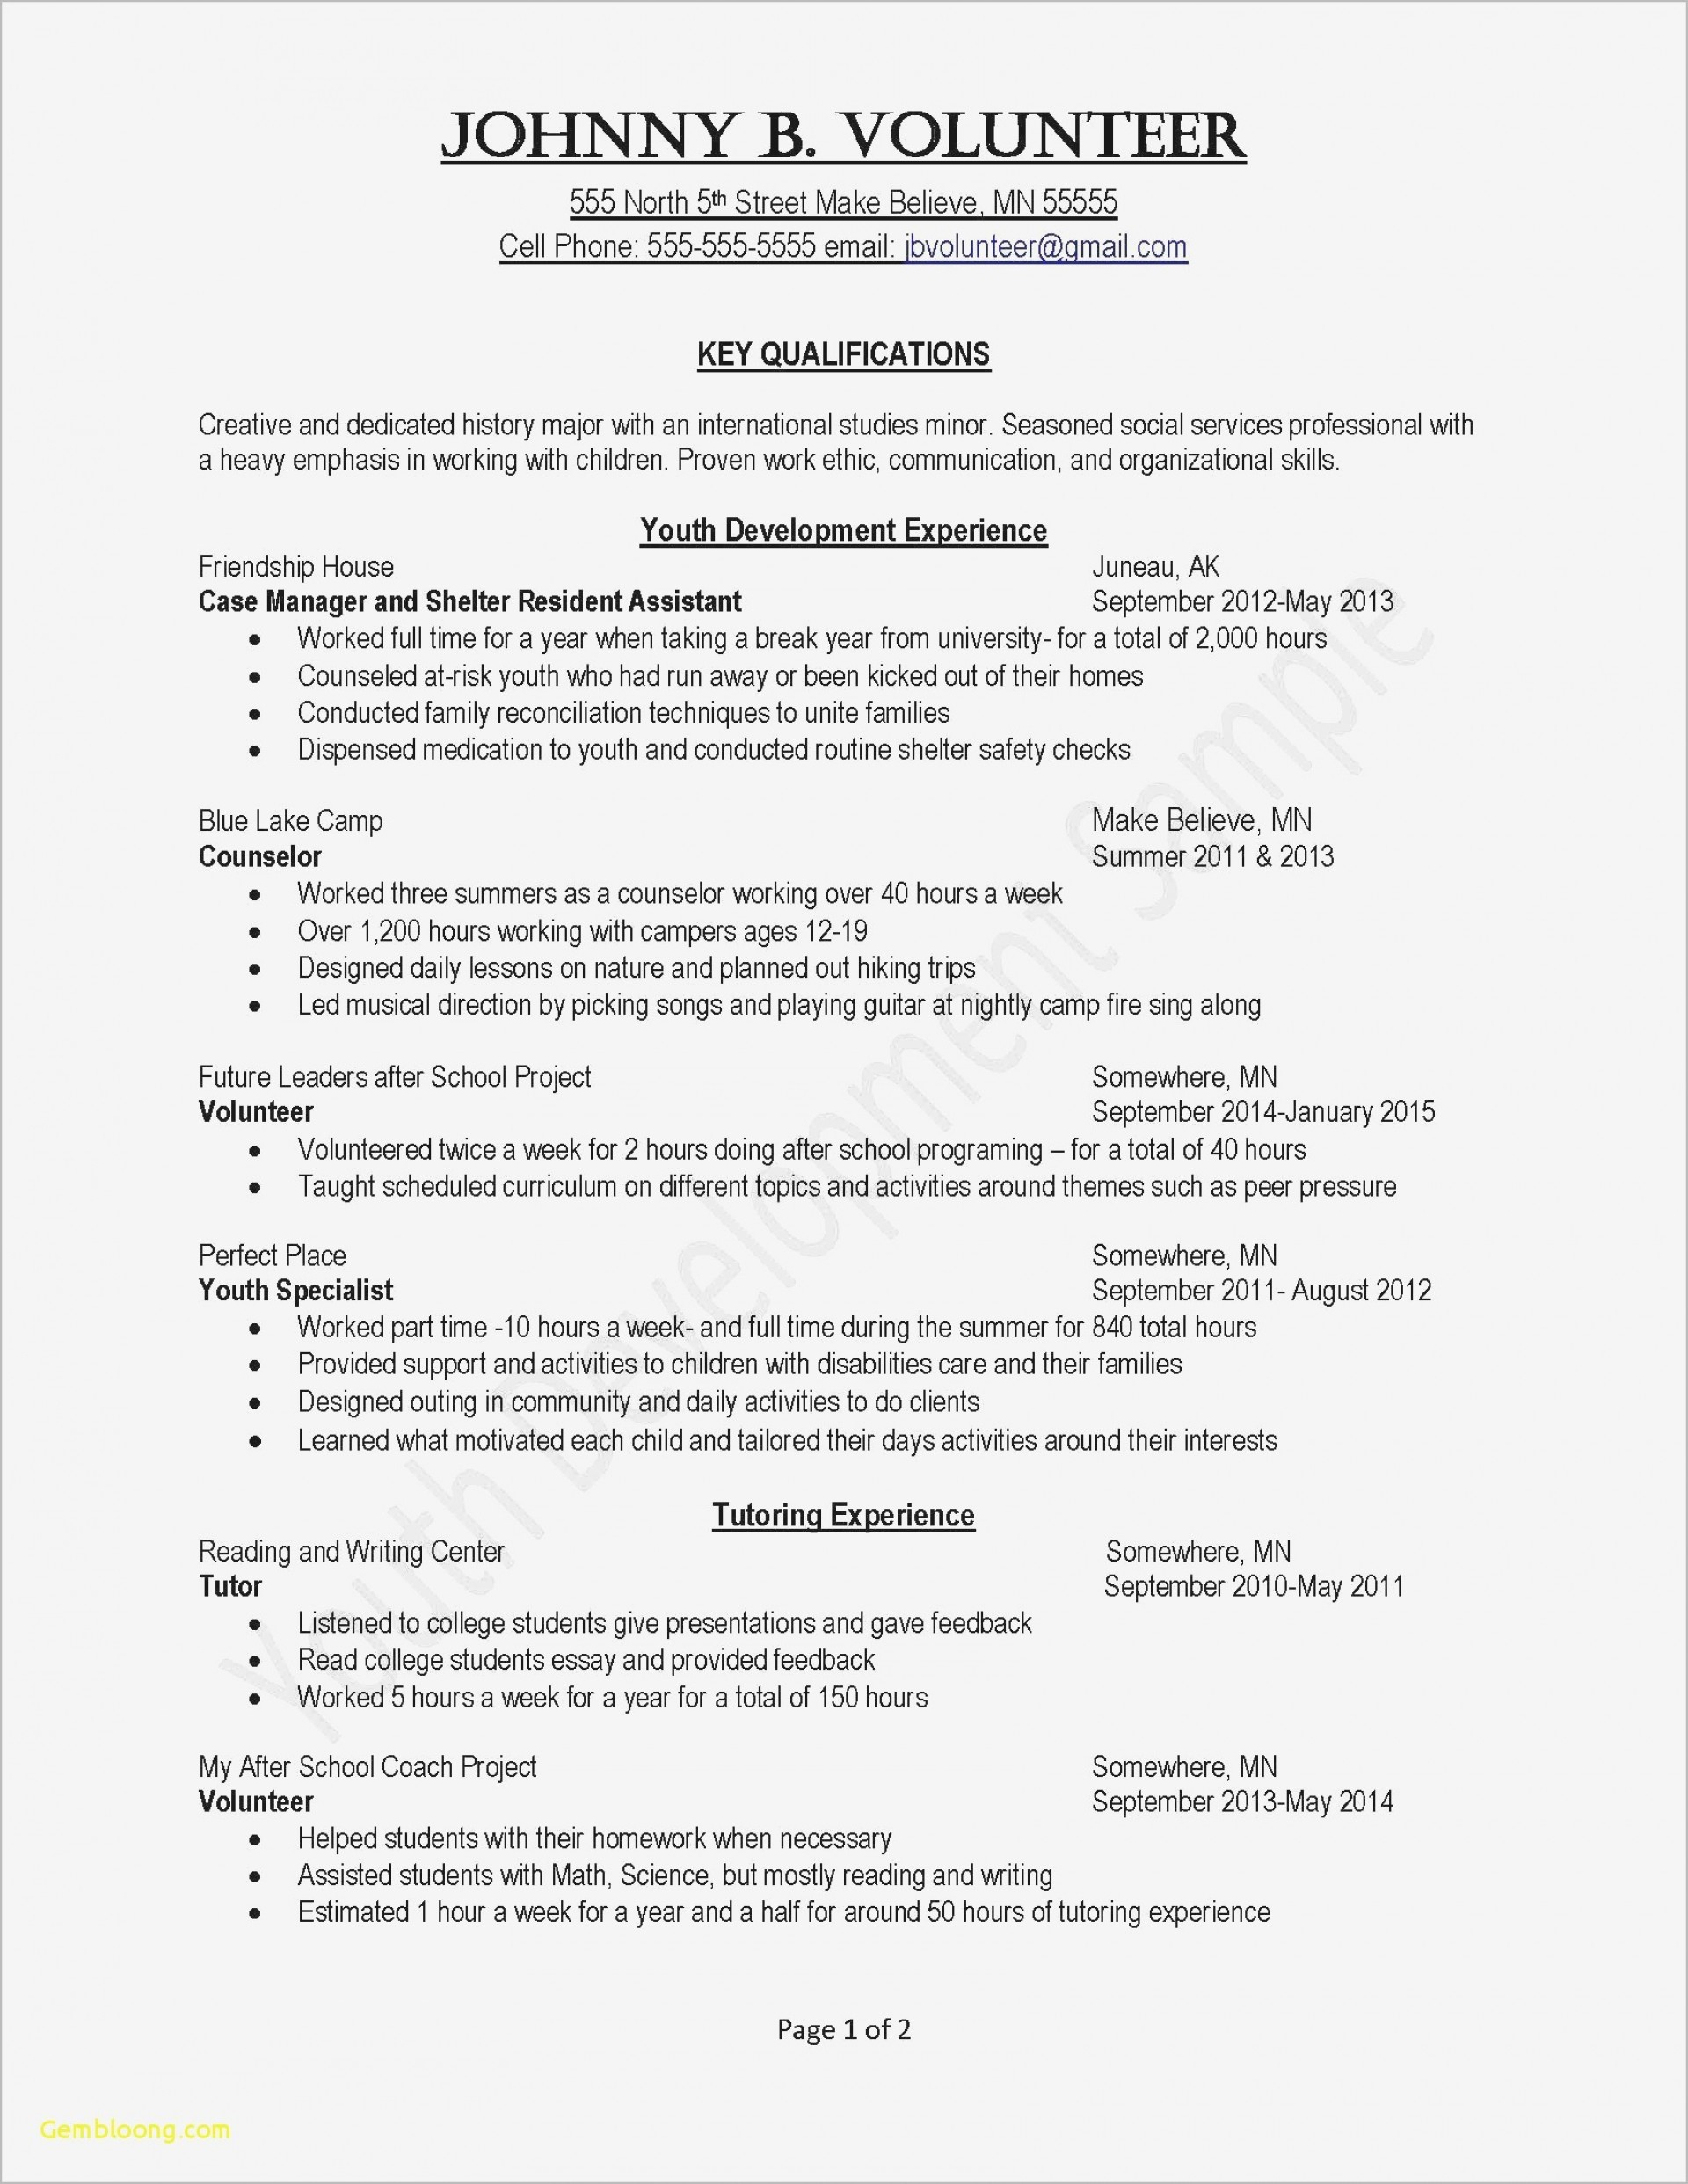 028 Template Ideas Free Printable Resume For Highschool pertaining to Printable Social Skills Fill In The Blanks